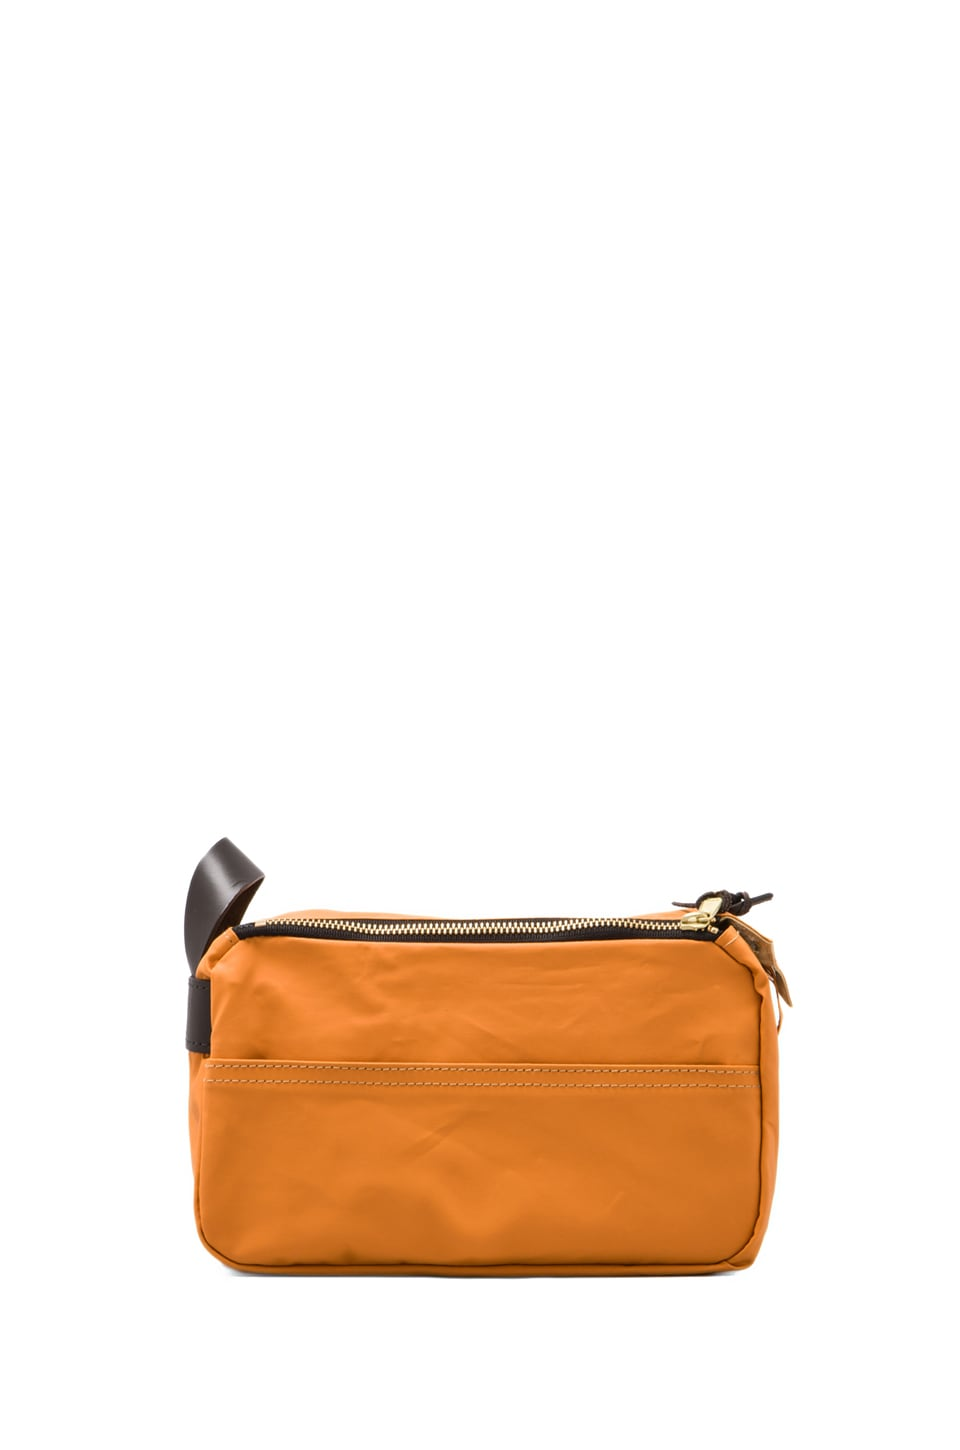 Filson 2-Zip Travel Kit in Russet Orange